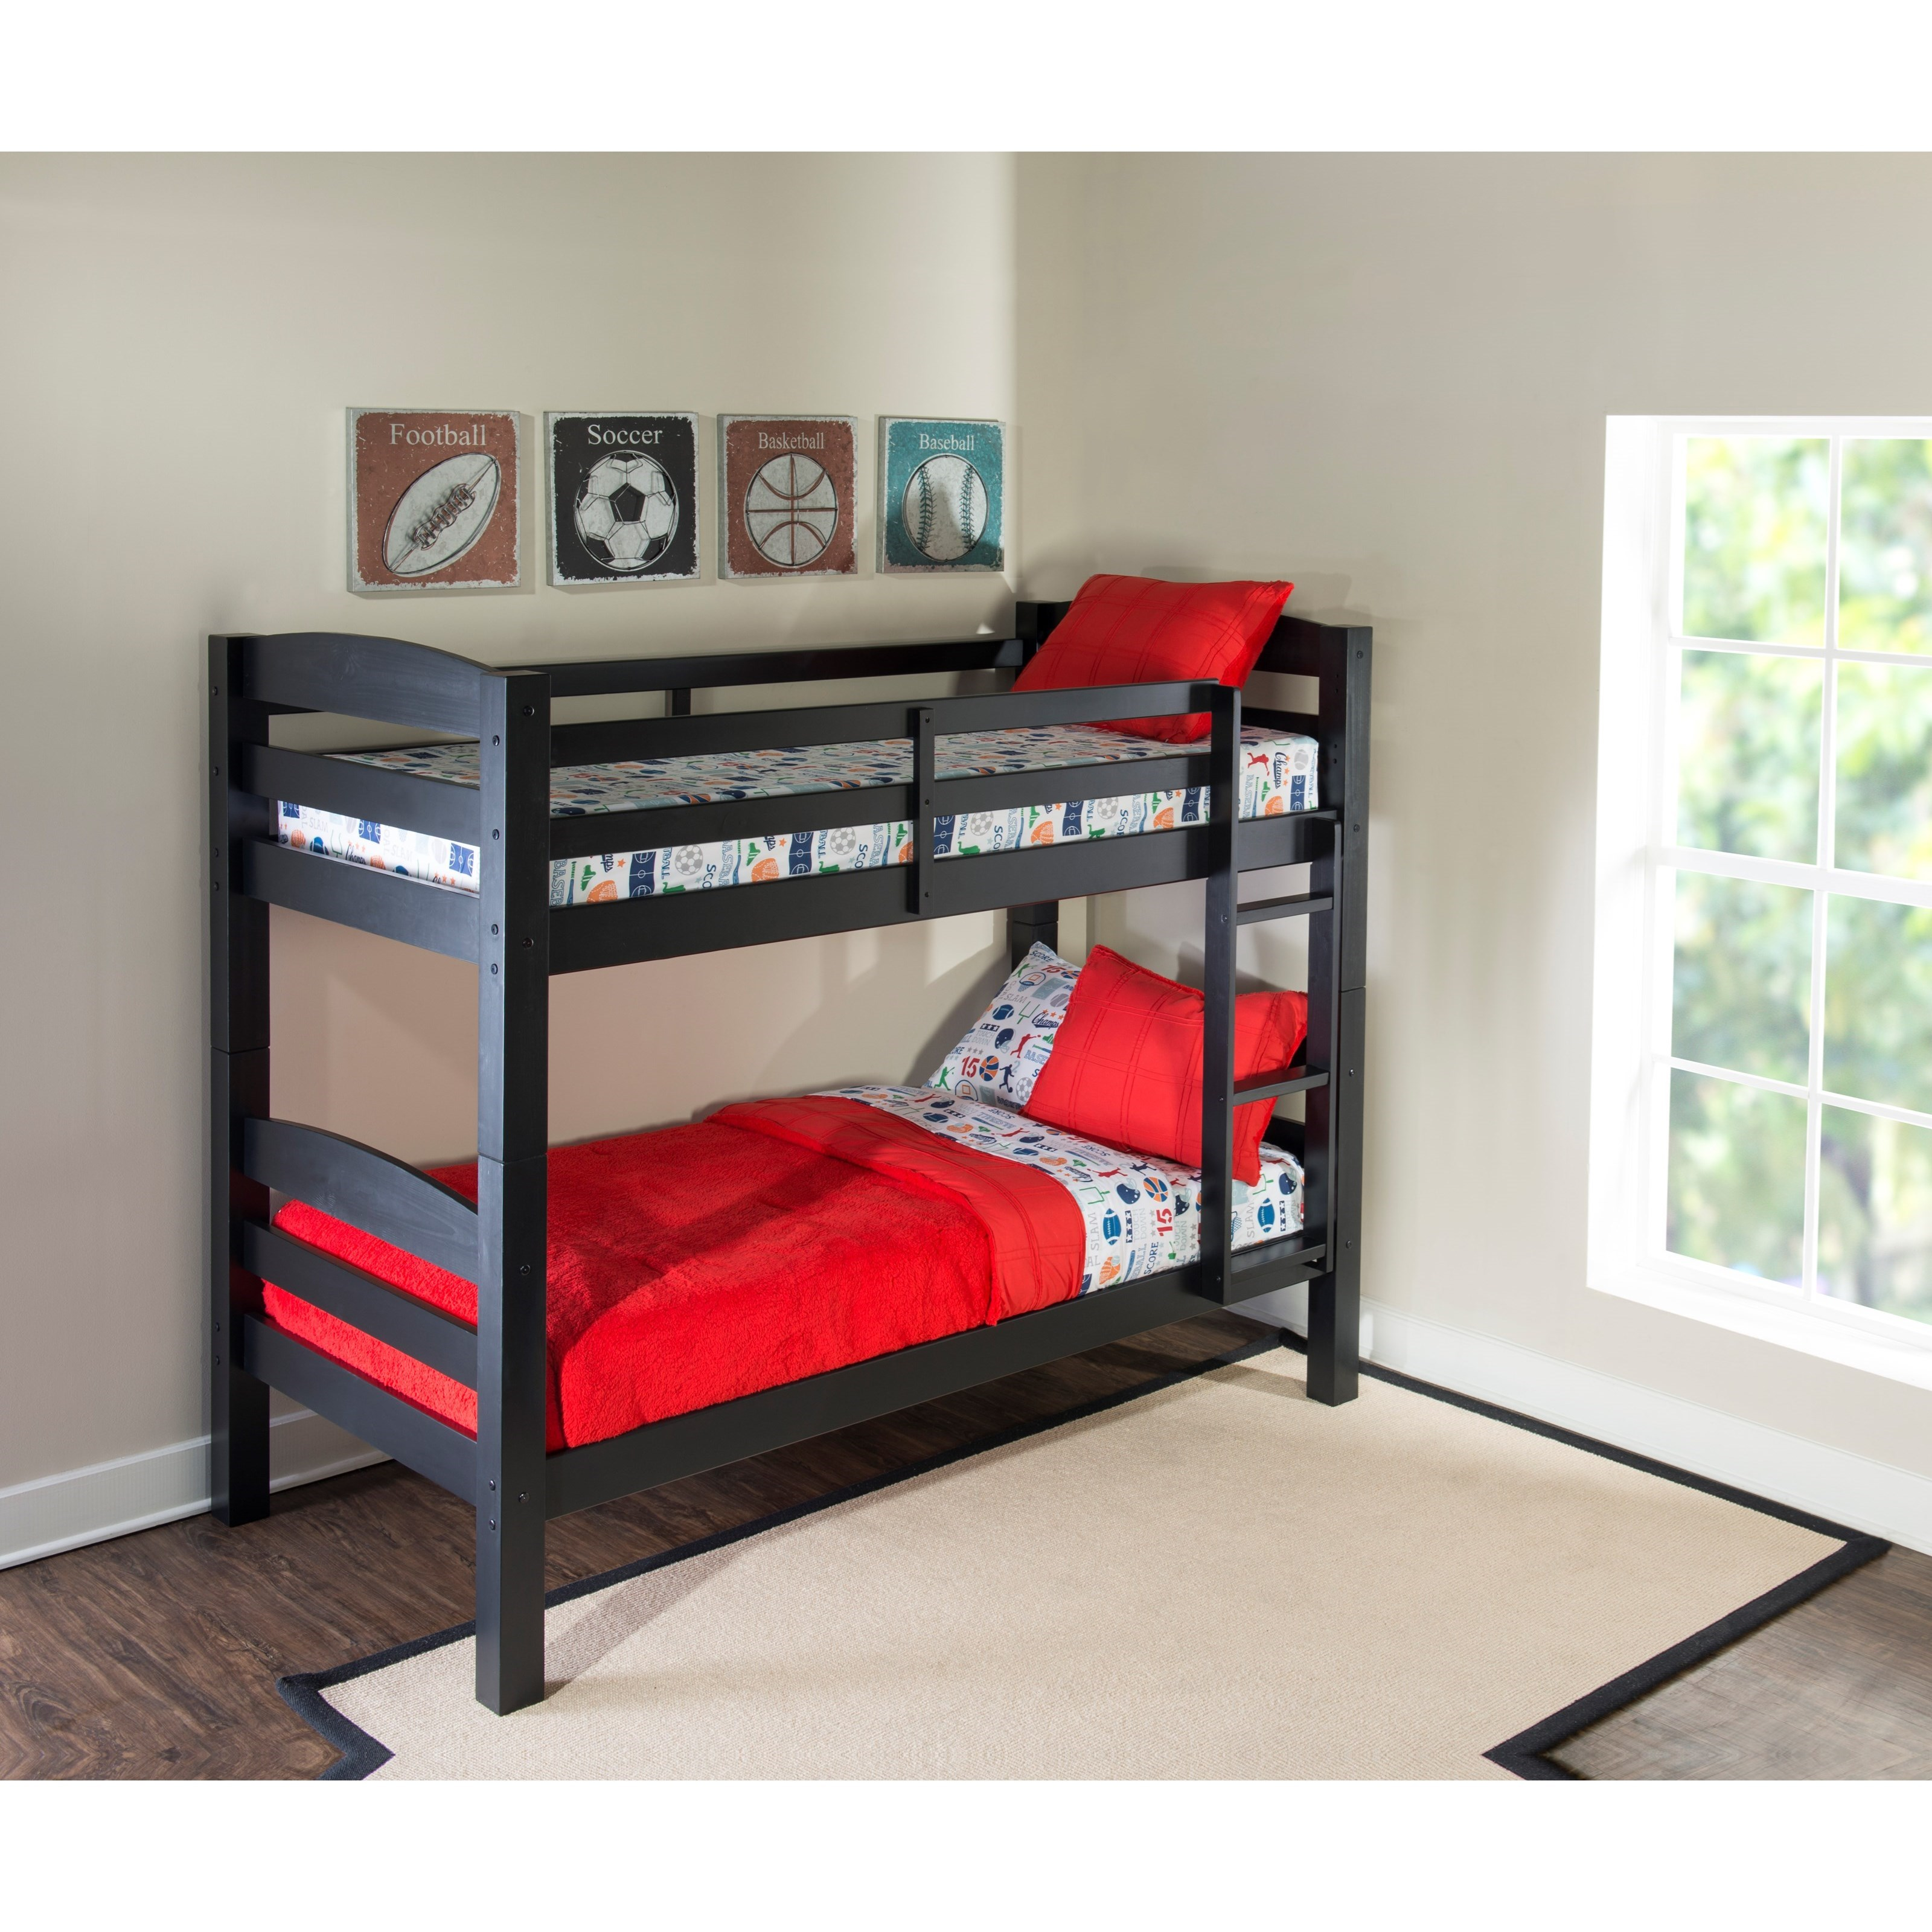 products cartons bunksupholstered and beds upholstered bunks in day height trim bed item width ships youth powell threshold